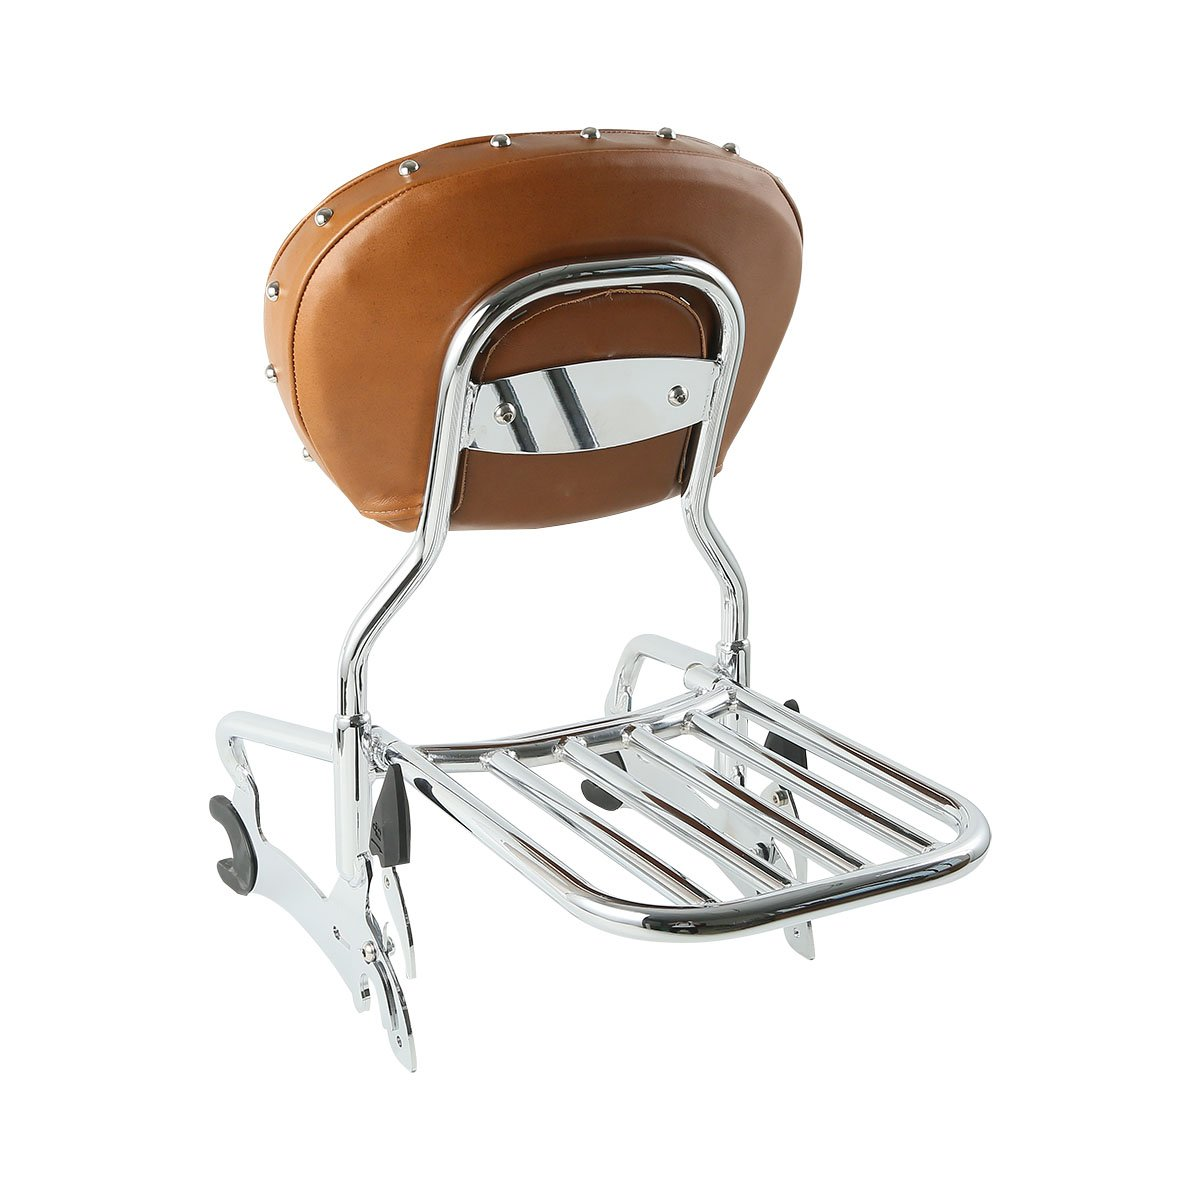 XMT-MOTO 12 Backrest Sissy Bar with Luggage Rack For Indian chief classic//vintage 2014 2015 2016 2017 2018,Indian chief dark horse 2016 2017 2018